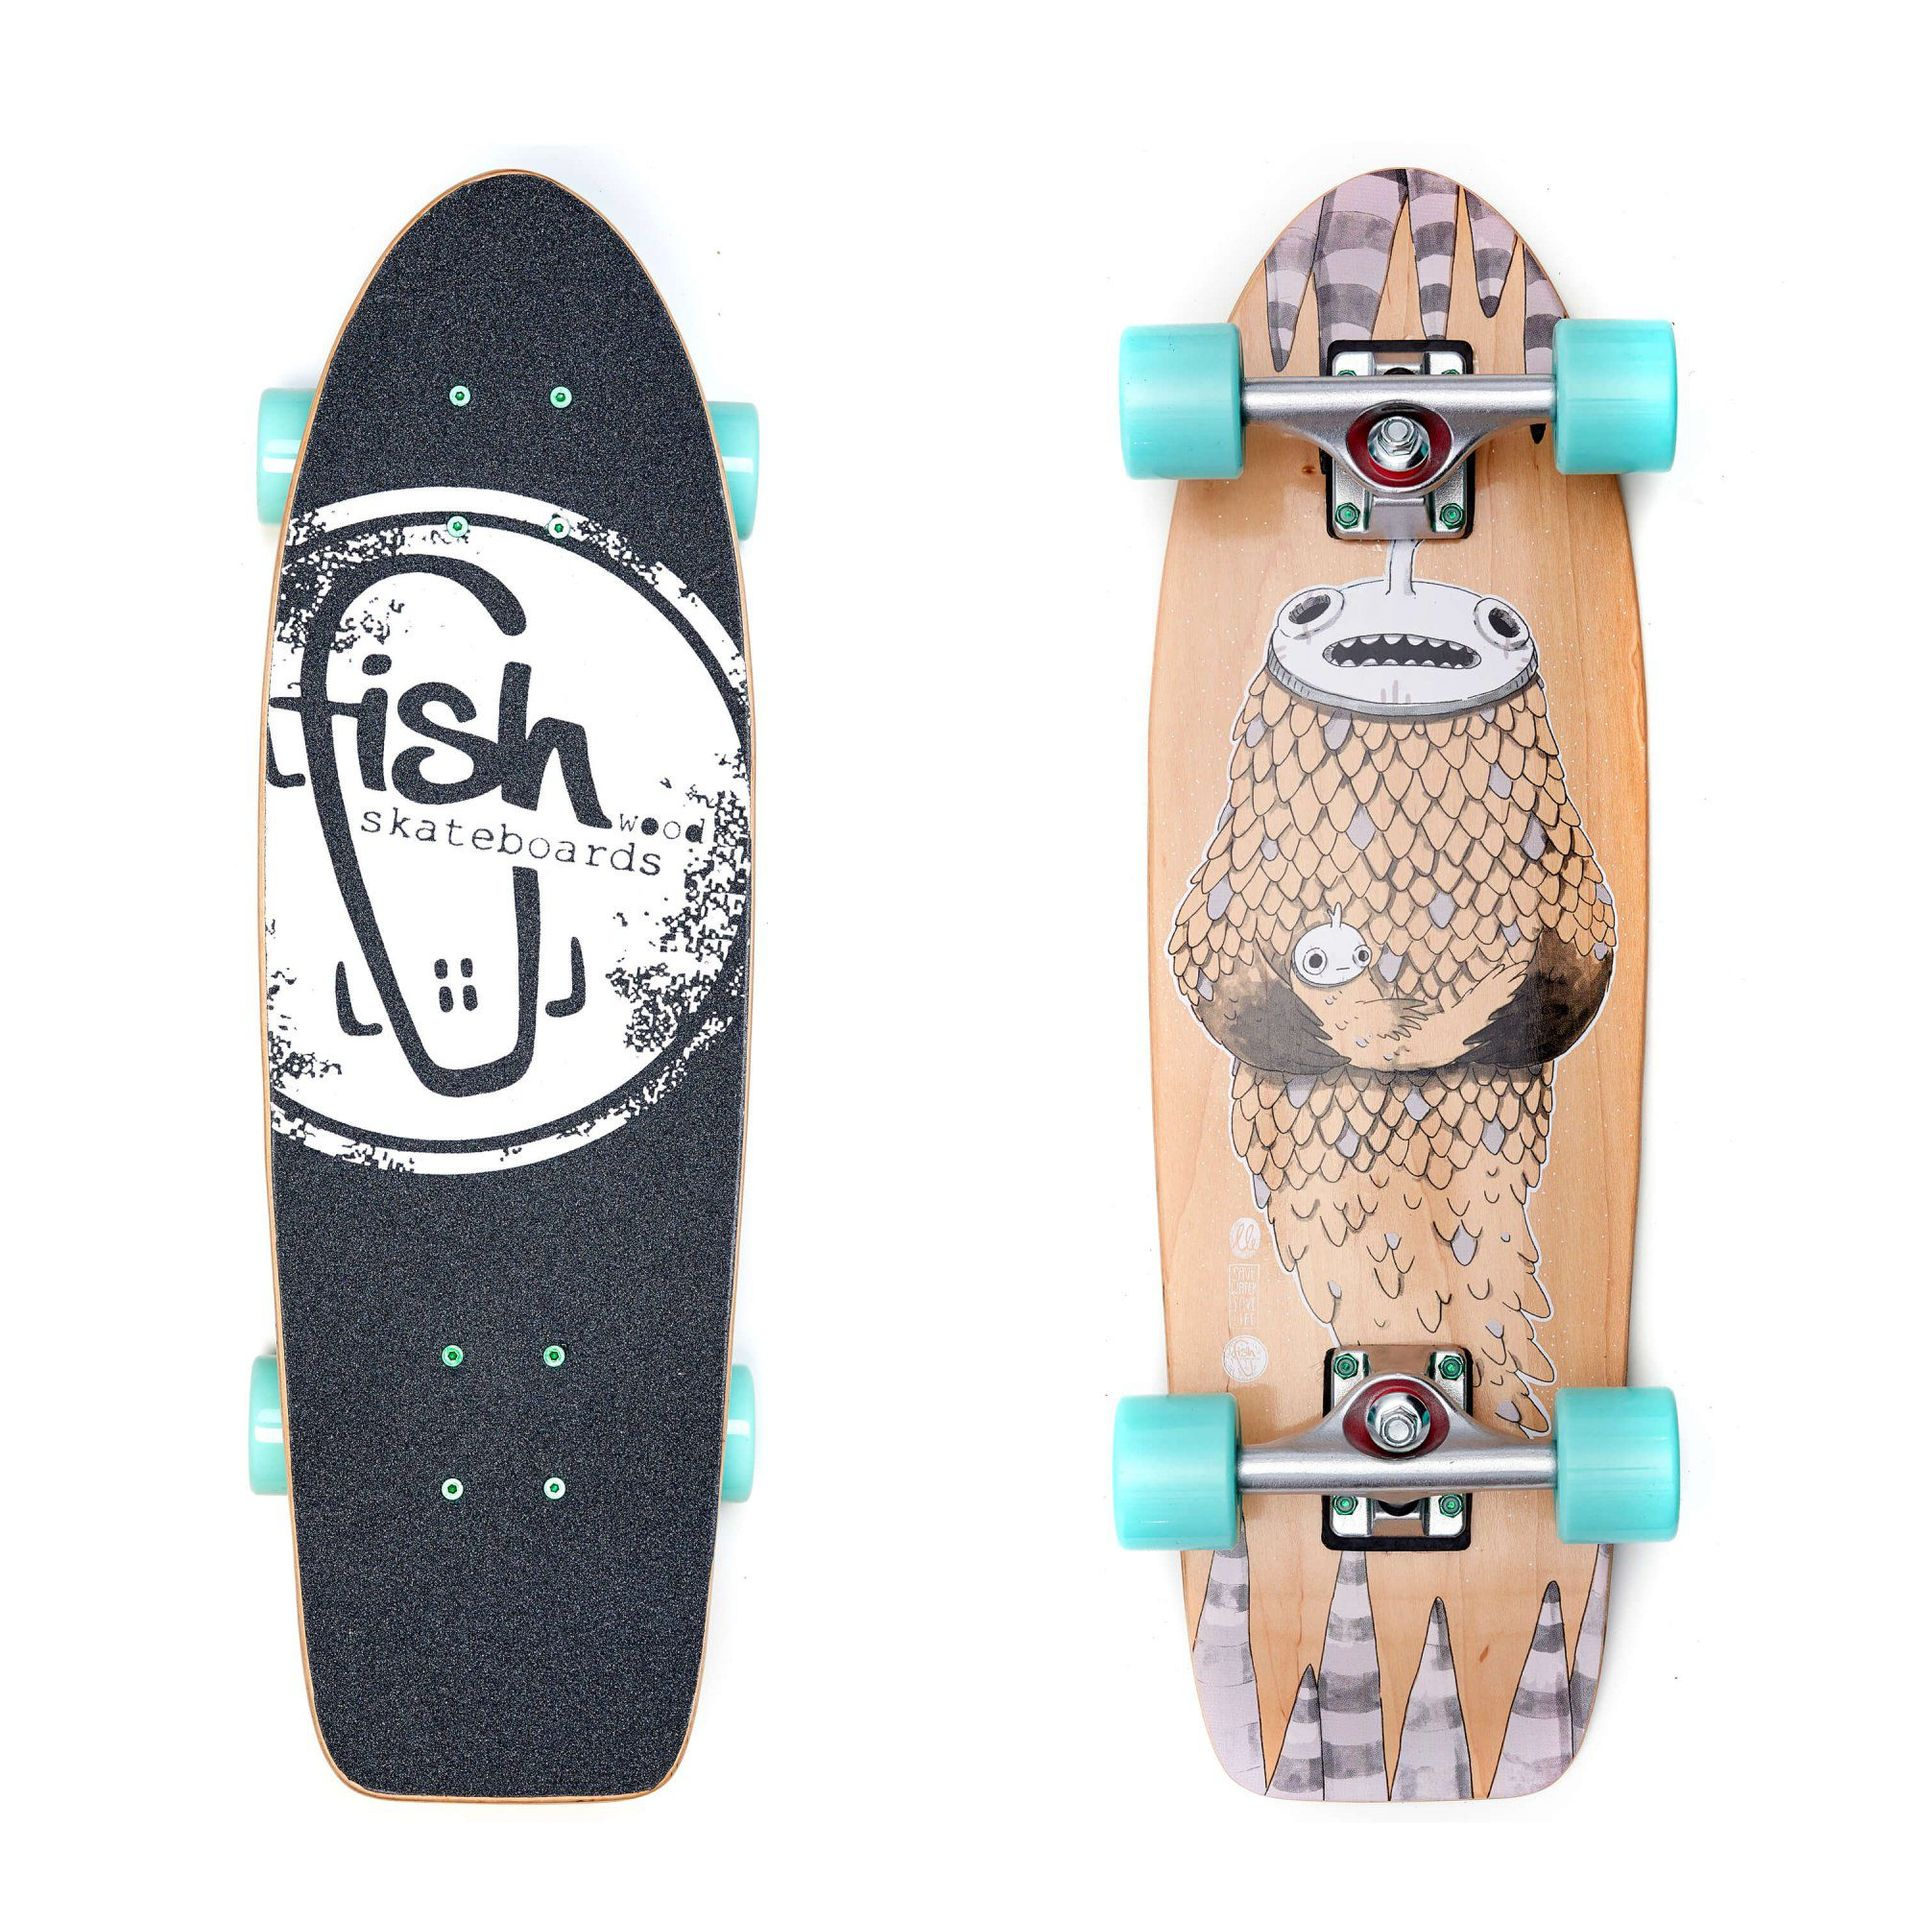 FISHBOARD FISH SKATEBOARDS CRUISER 26 NARWHAL|SILVER|SUMMER GREEN 1